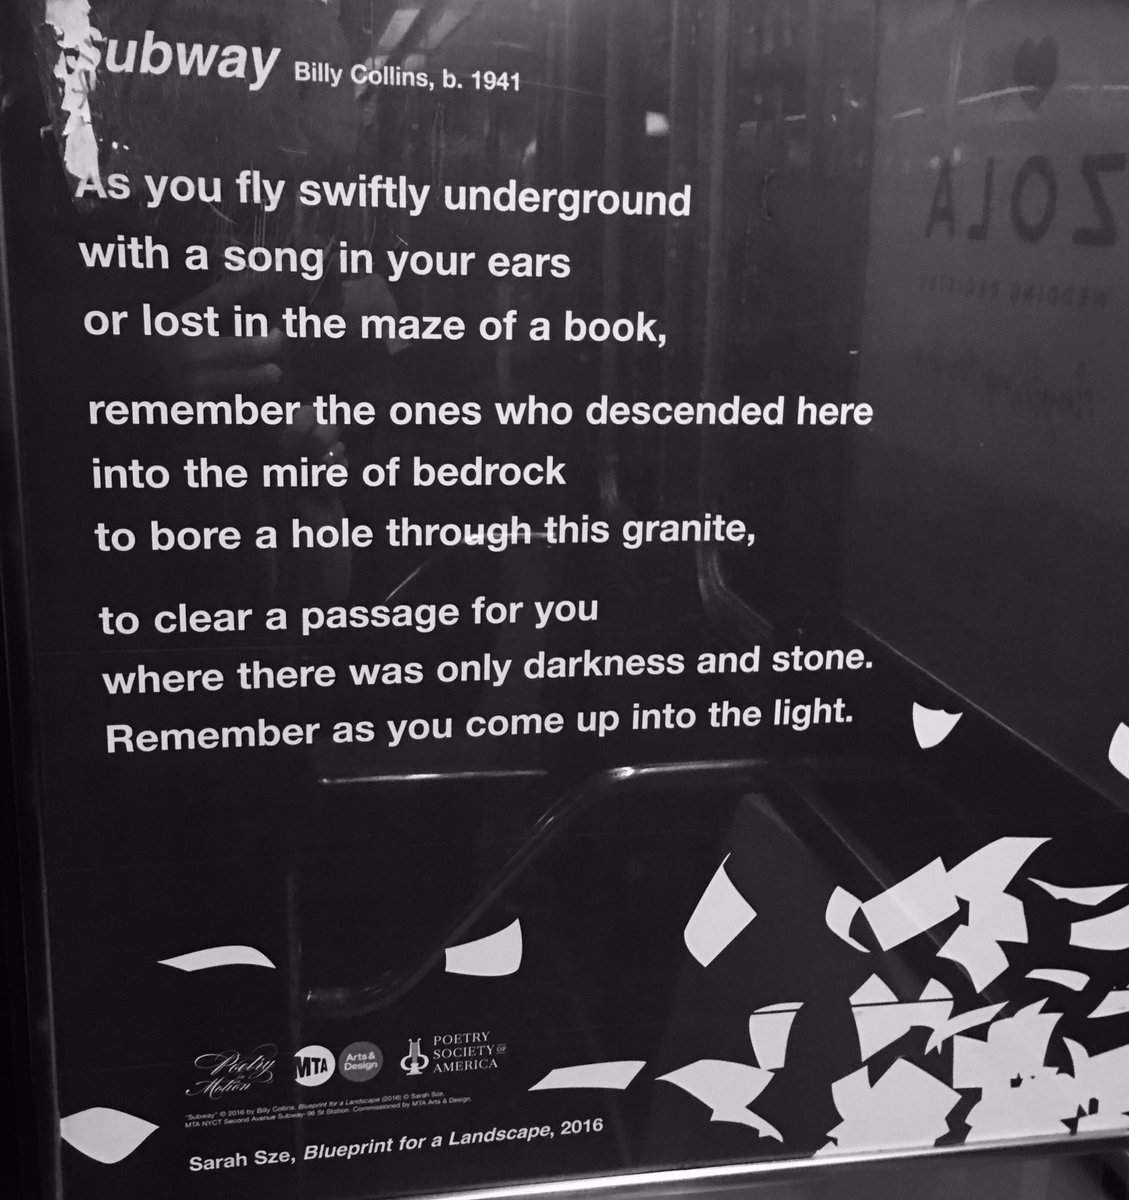 Alex atzberger on twitter inspiration nyc subway poem remember alex atzberger on twitter inspiration nyc subway poem remember the ones that clear a passage for you grateful to entrepreneursbuilders keithjkrach malvernweather Image collections